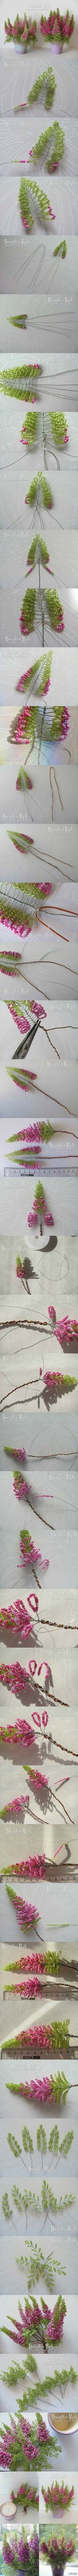 Let's DIY_ladyEOS - These are beautiful, remind me of the wildflowers I used to pick for my mom in the woods near our house.